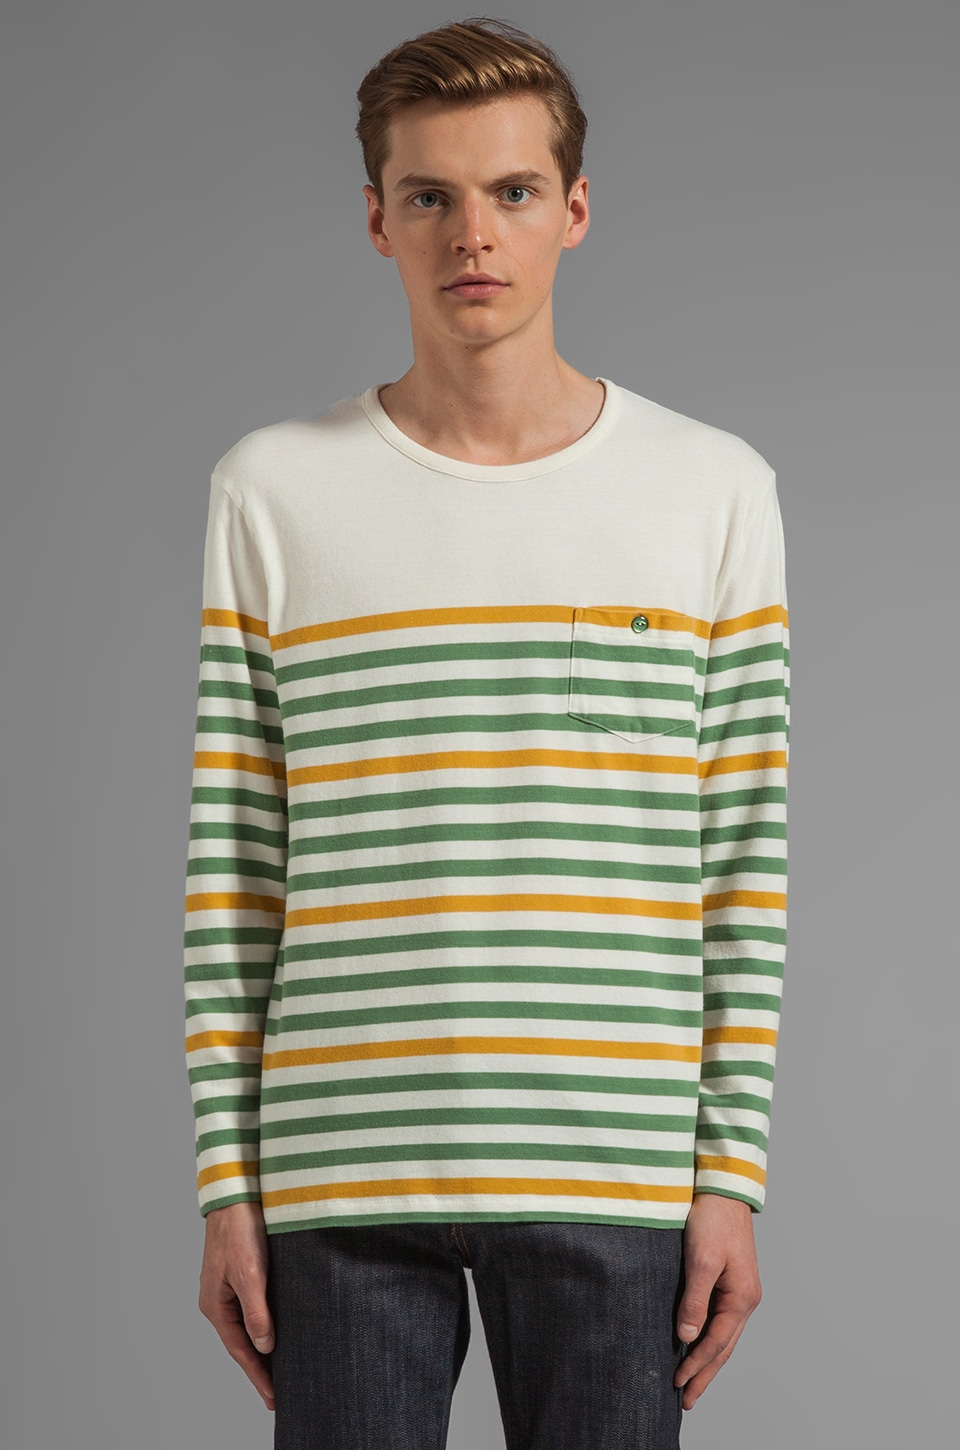 LEVI'S: Made & Crafted Breton Striped Tee in Golden Spice/ Dark Ivy